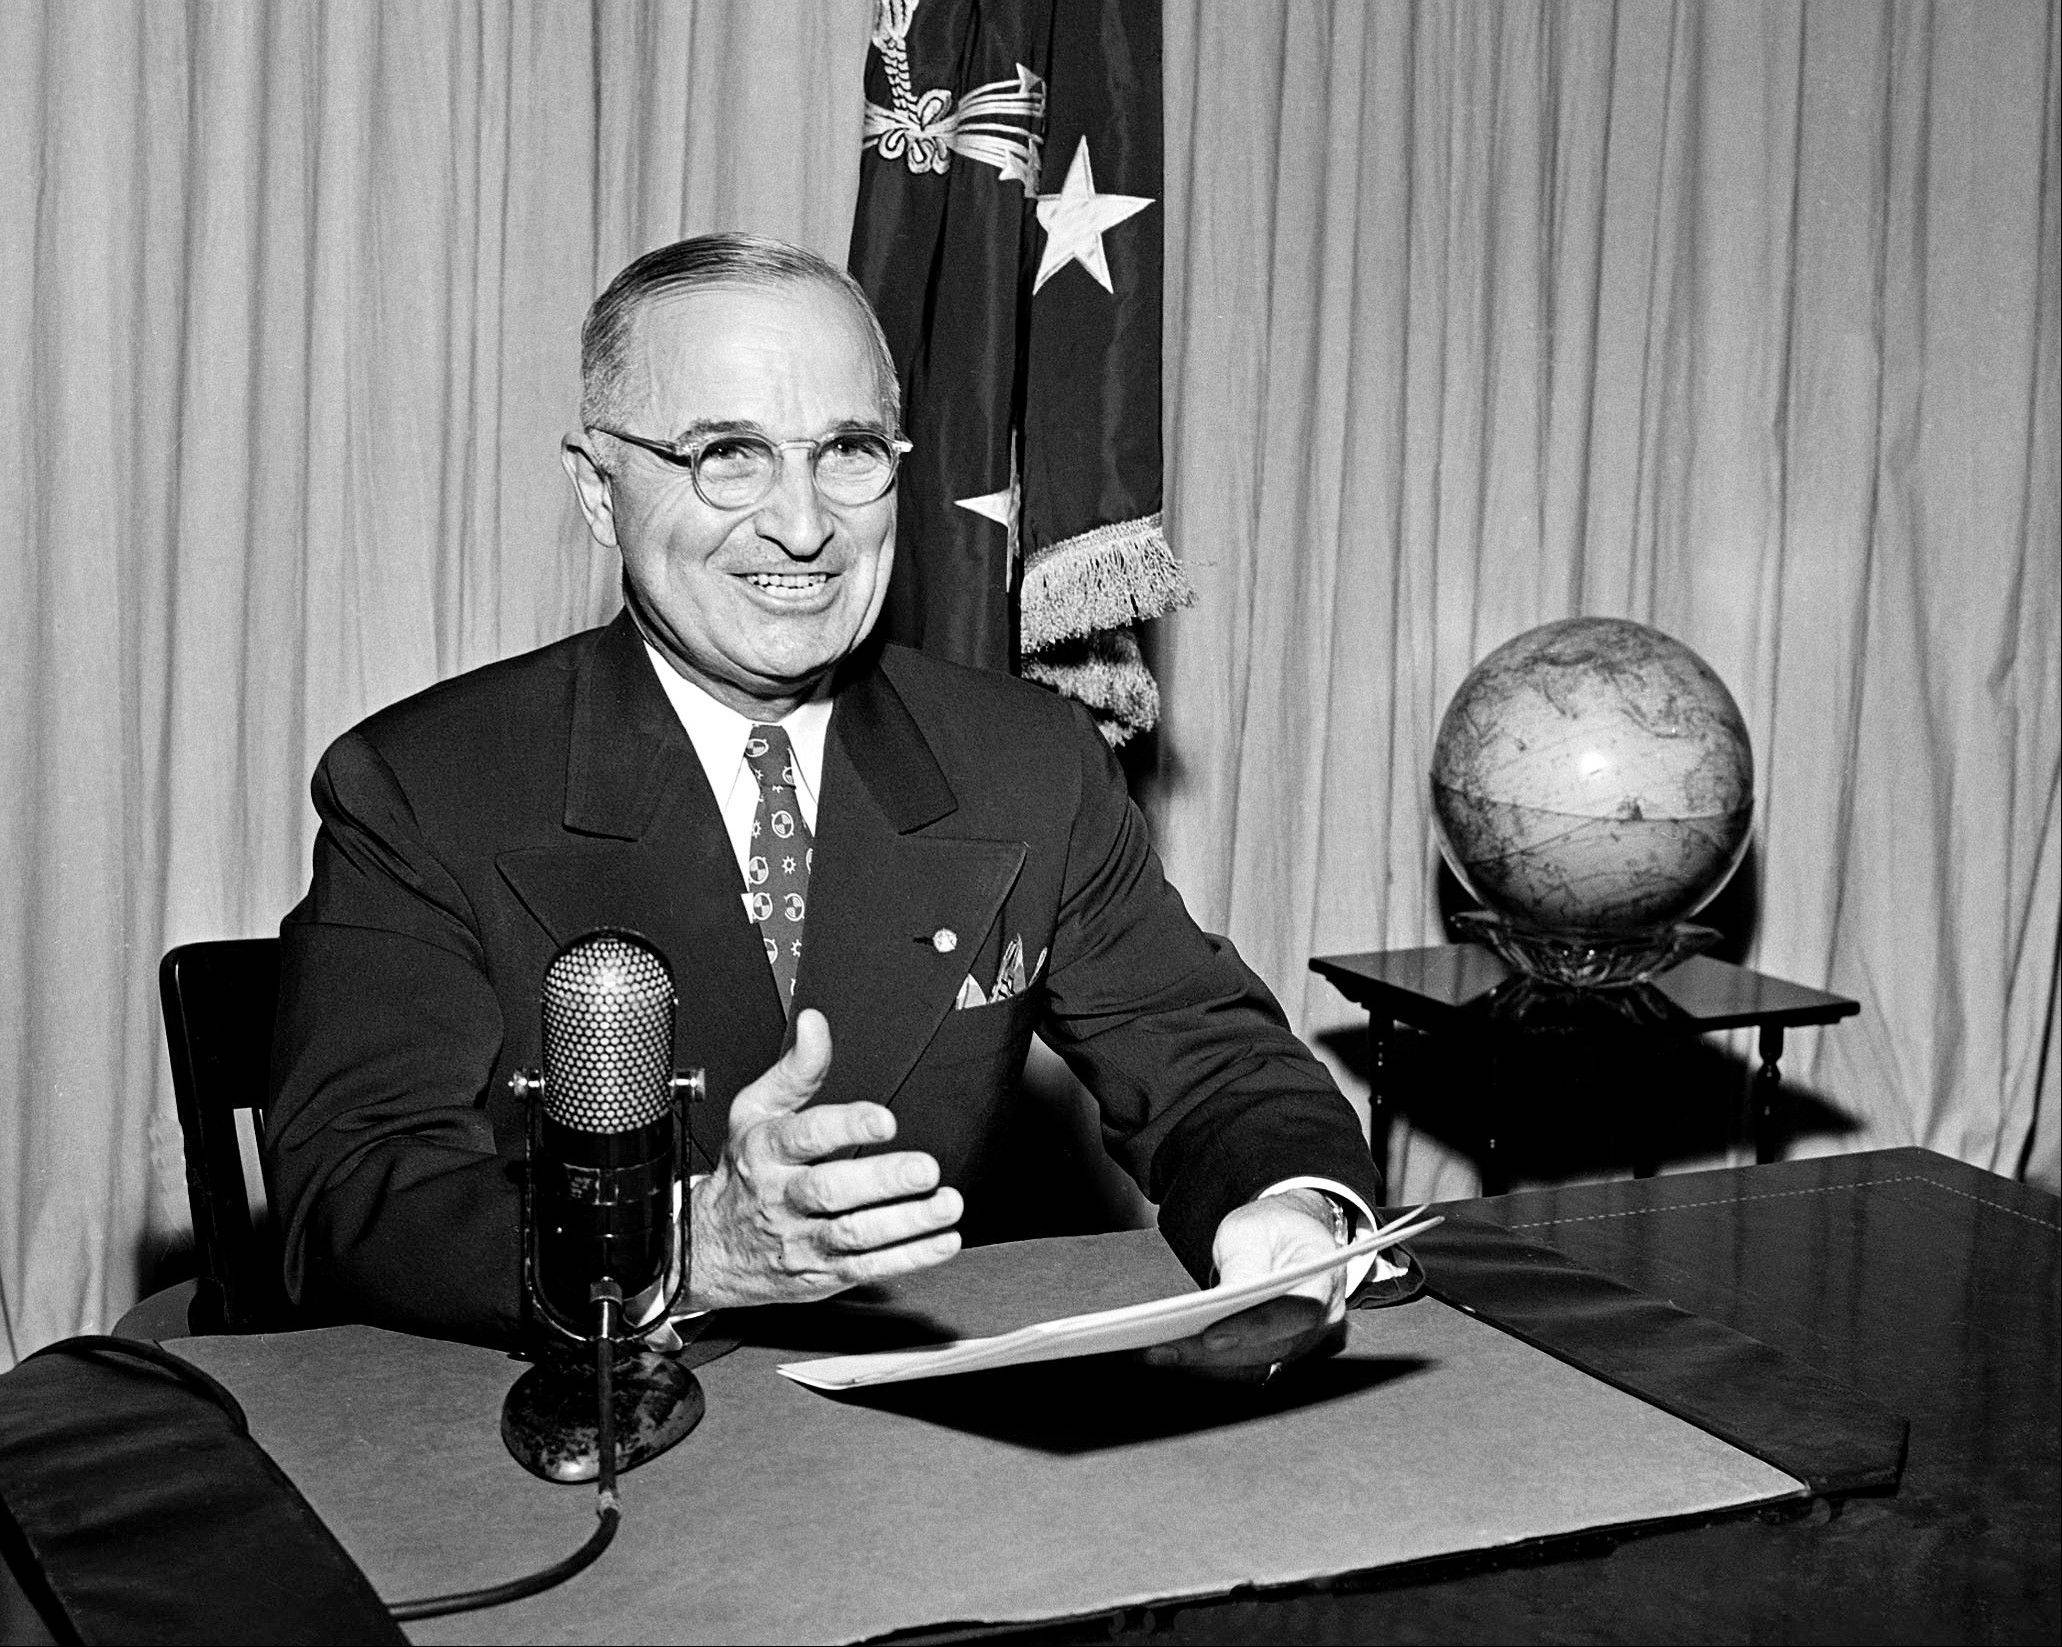 In this Sept. 1, 1945 file photo, then-U.S. President Harry Truman sits before a microphone at the White House in Washington, where he broadcast a message on the formal surrender of Japan. Clifton Truman Daniel, a grandson of ex-President Truman, who ordered the atomic bombings of Hiroshima and Nagasaki during World War II, is in Hiroshima to attend a memorial service for the victims on Monday, Aug. 6, 2012, marking the 67th anniversary of the atomic bombing.